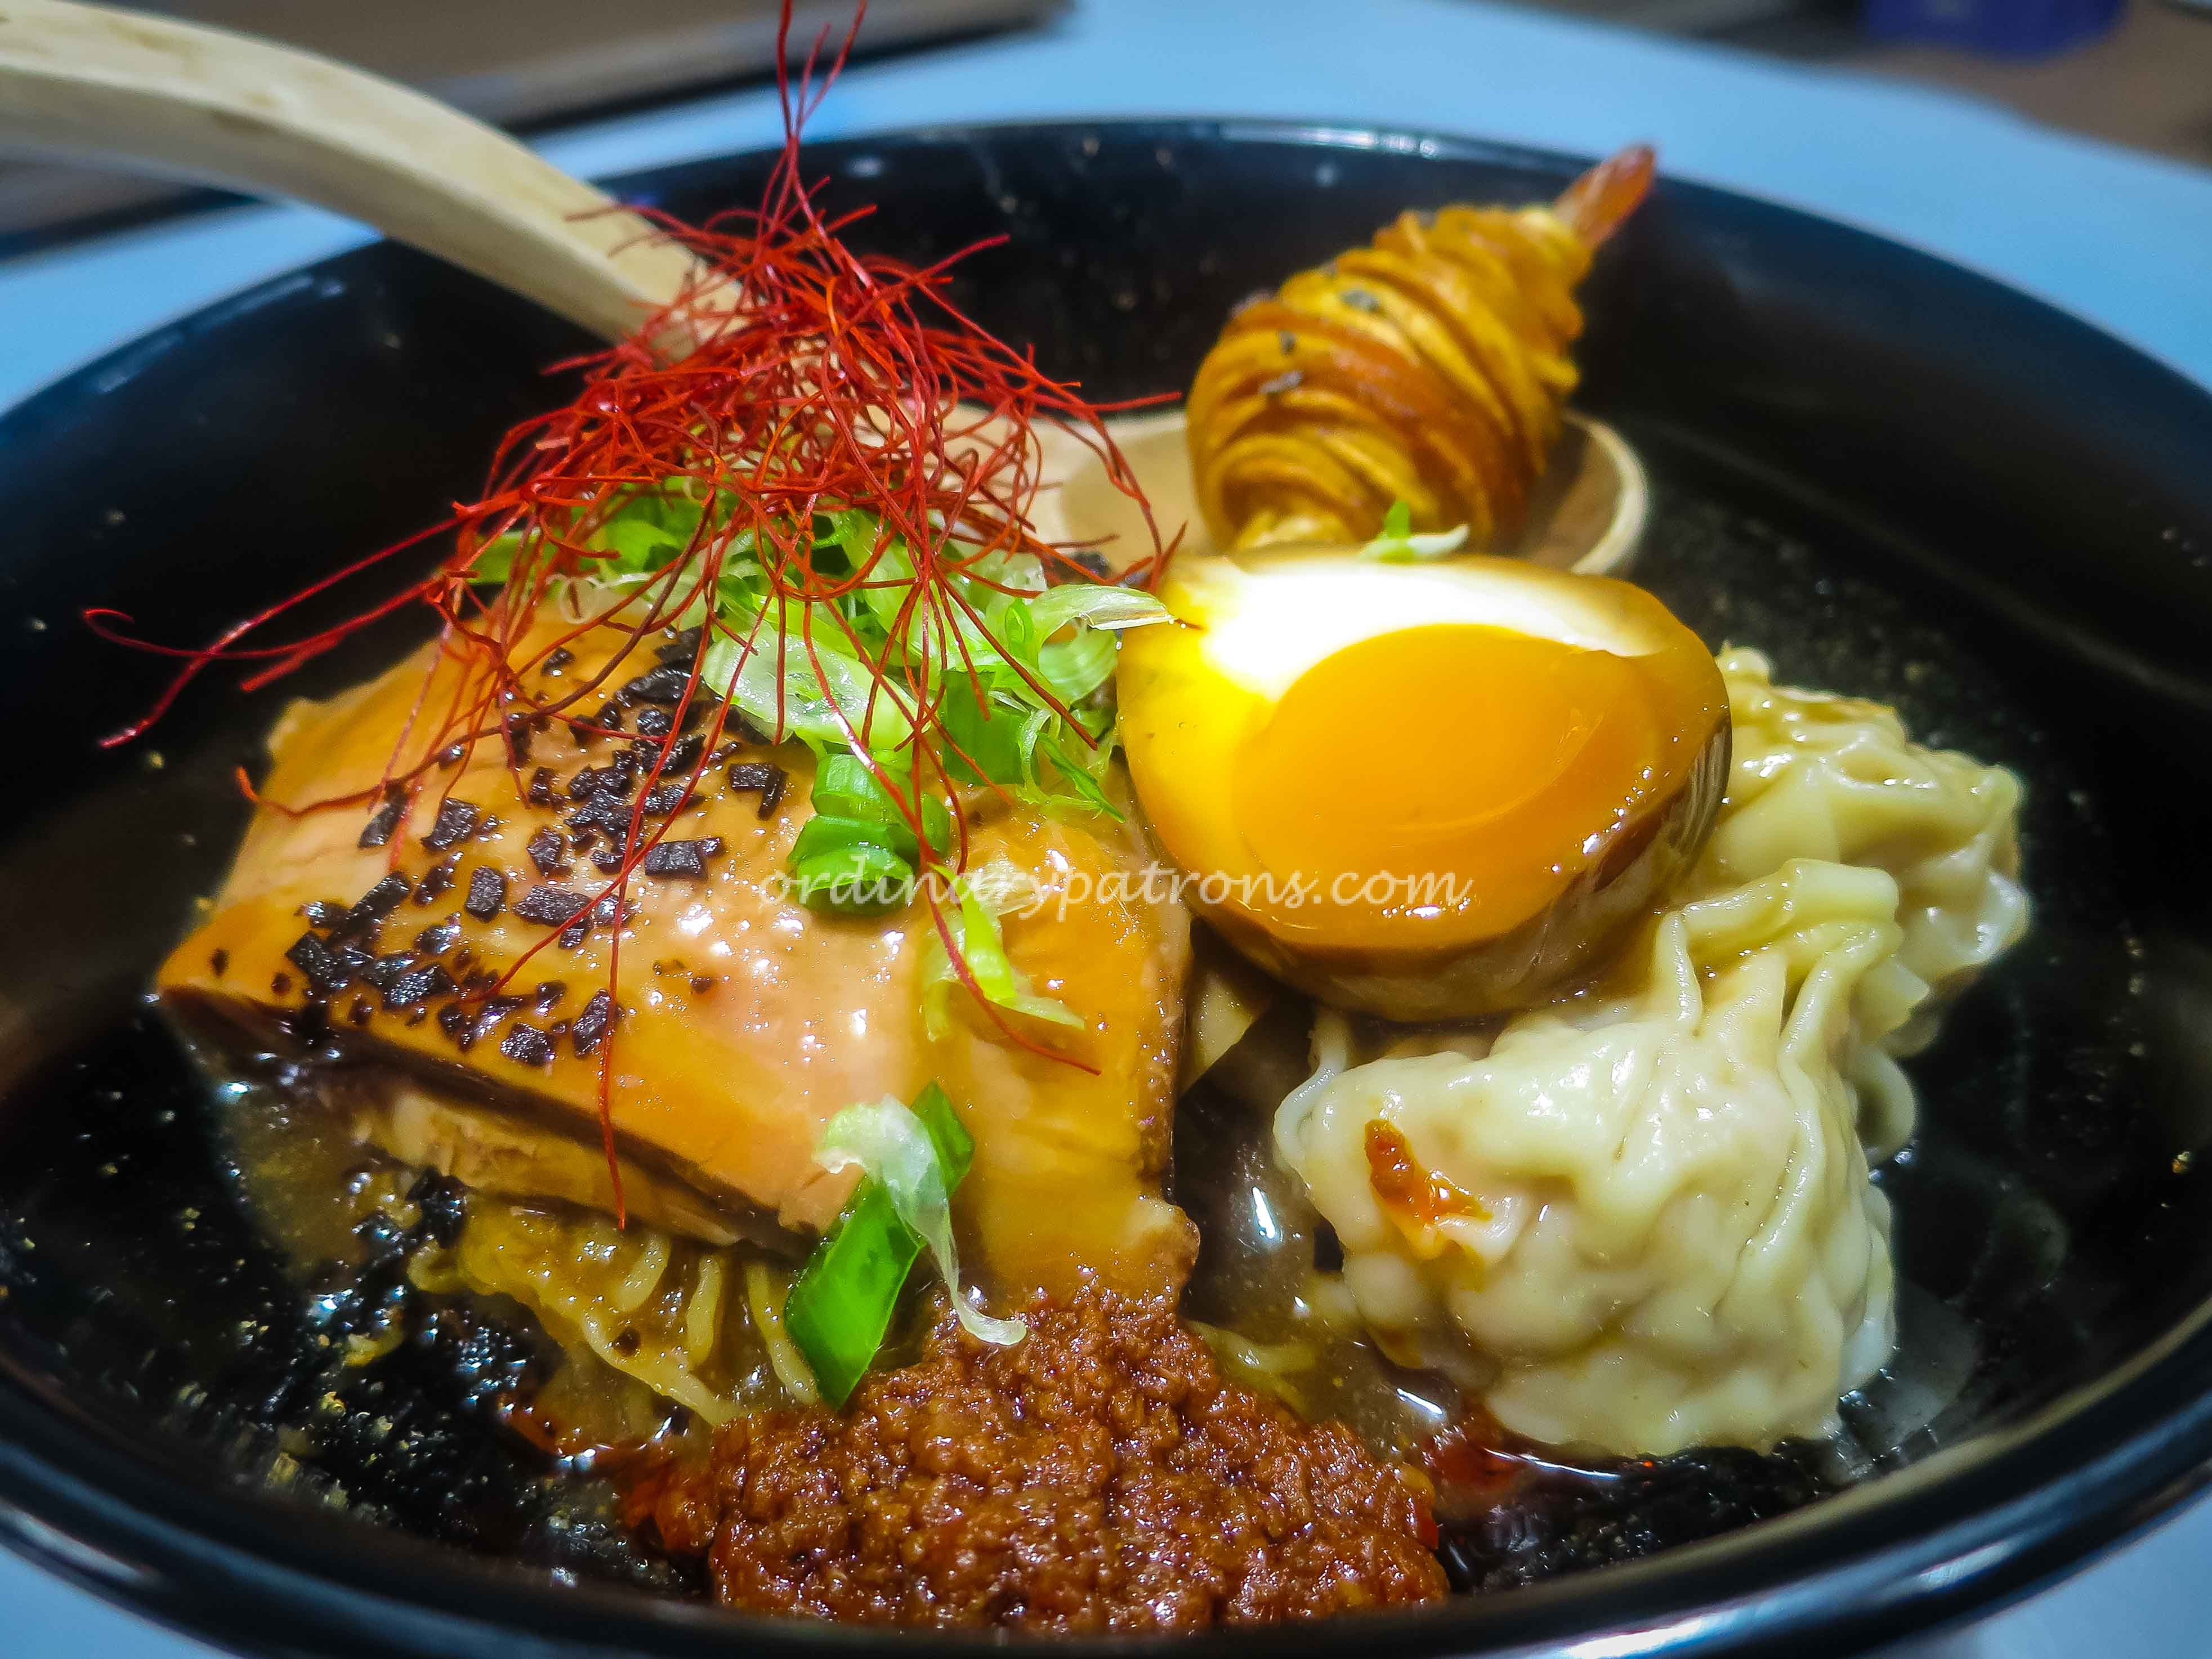 Singapore-style ramen hawker stall, A Noodle Story at Amoy Street Food Centre